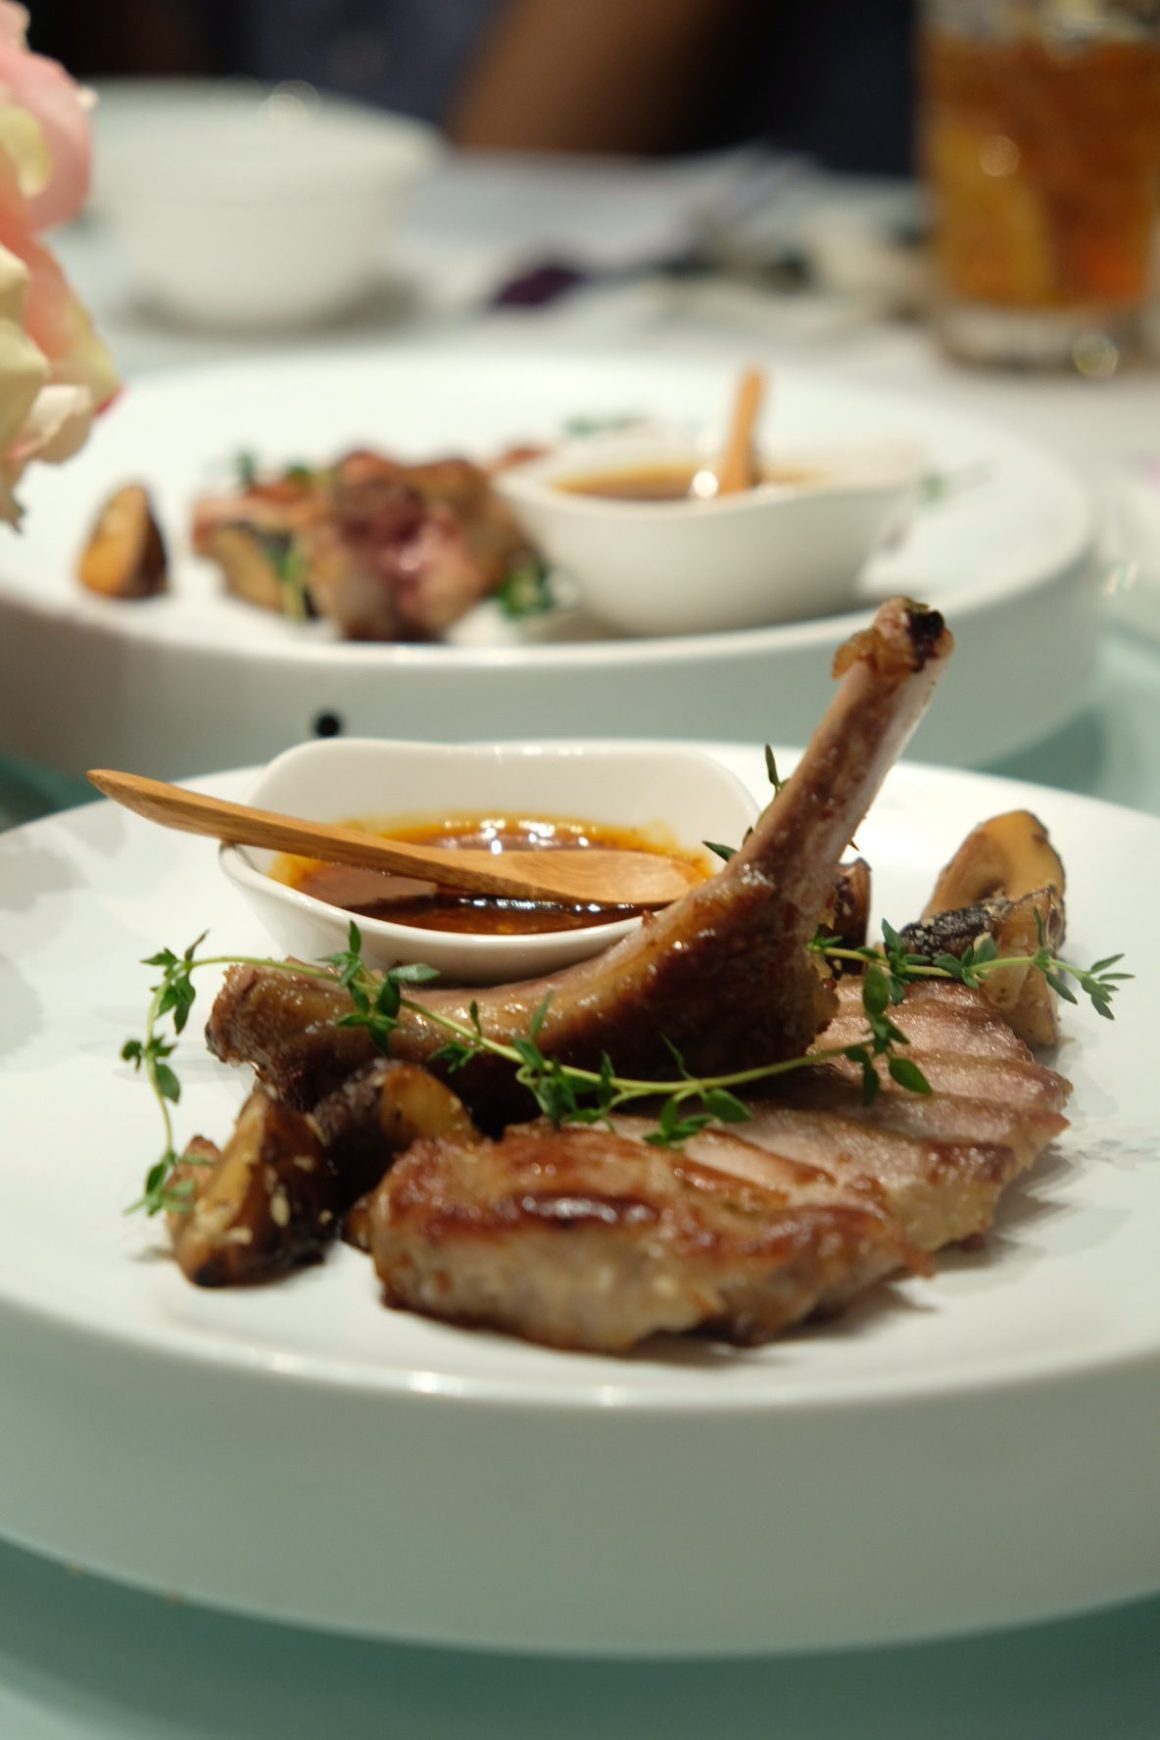 Parents' Day Promotion At Crystal Jade - Chargrilled Iberico pork rib ($26.80/portion)